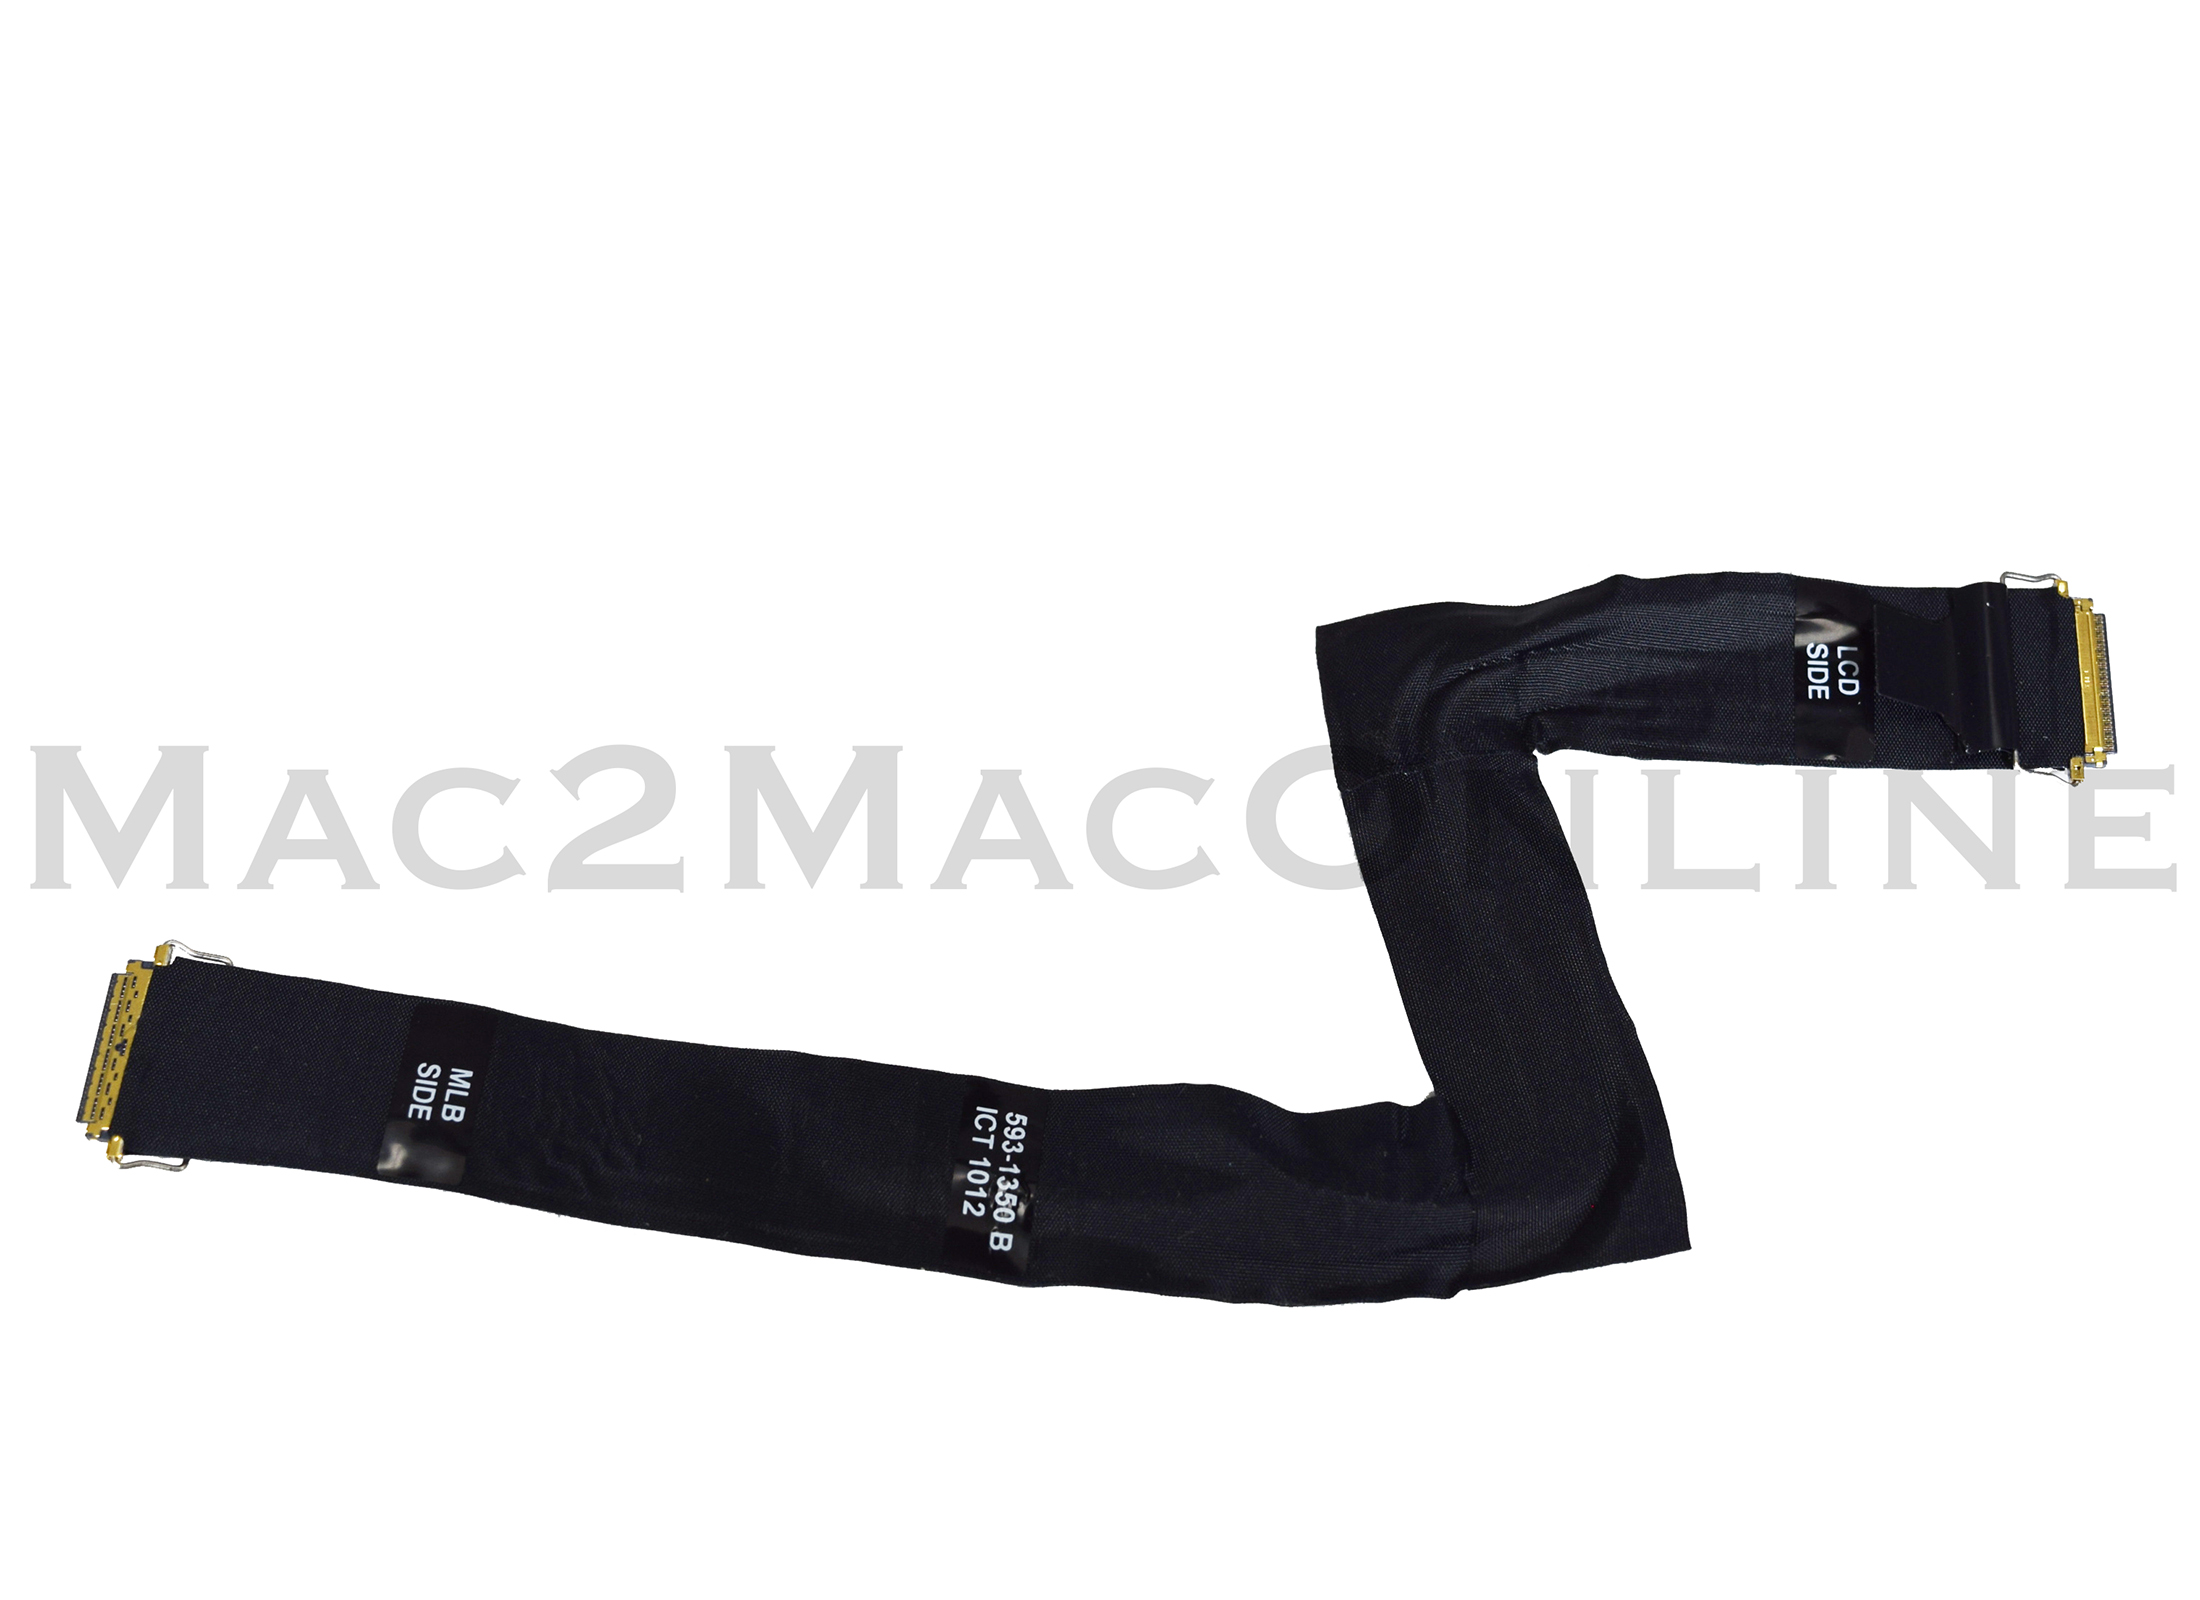 922 9811 21 5 Quot Imac Mid Late 2011 Displayport Cable